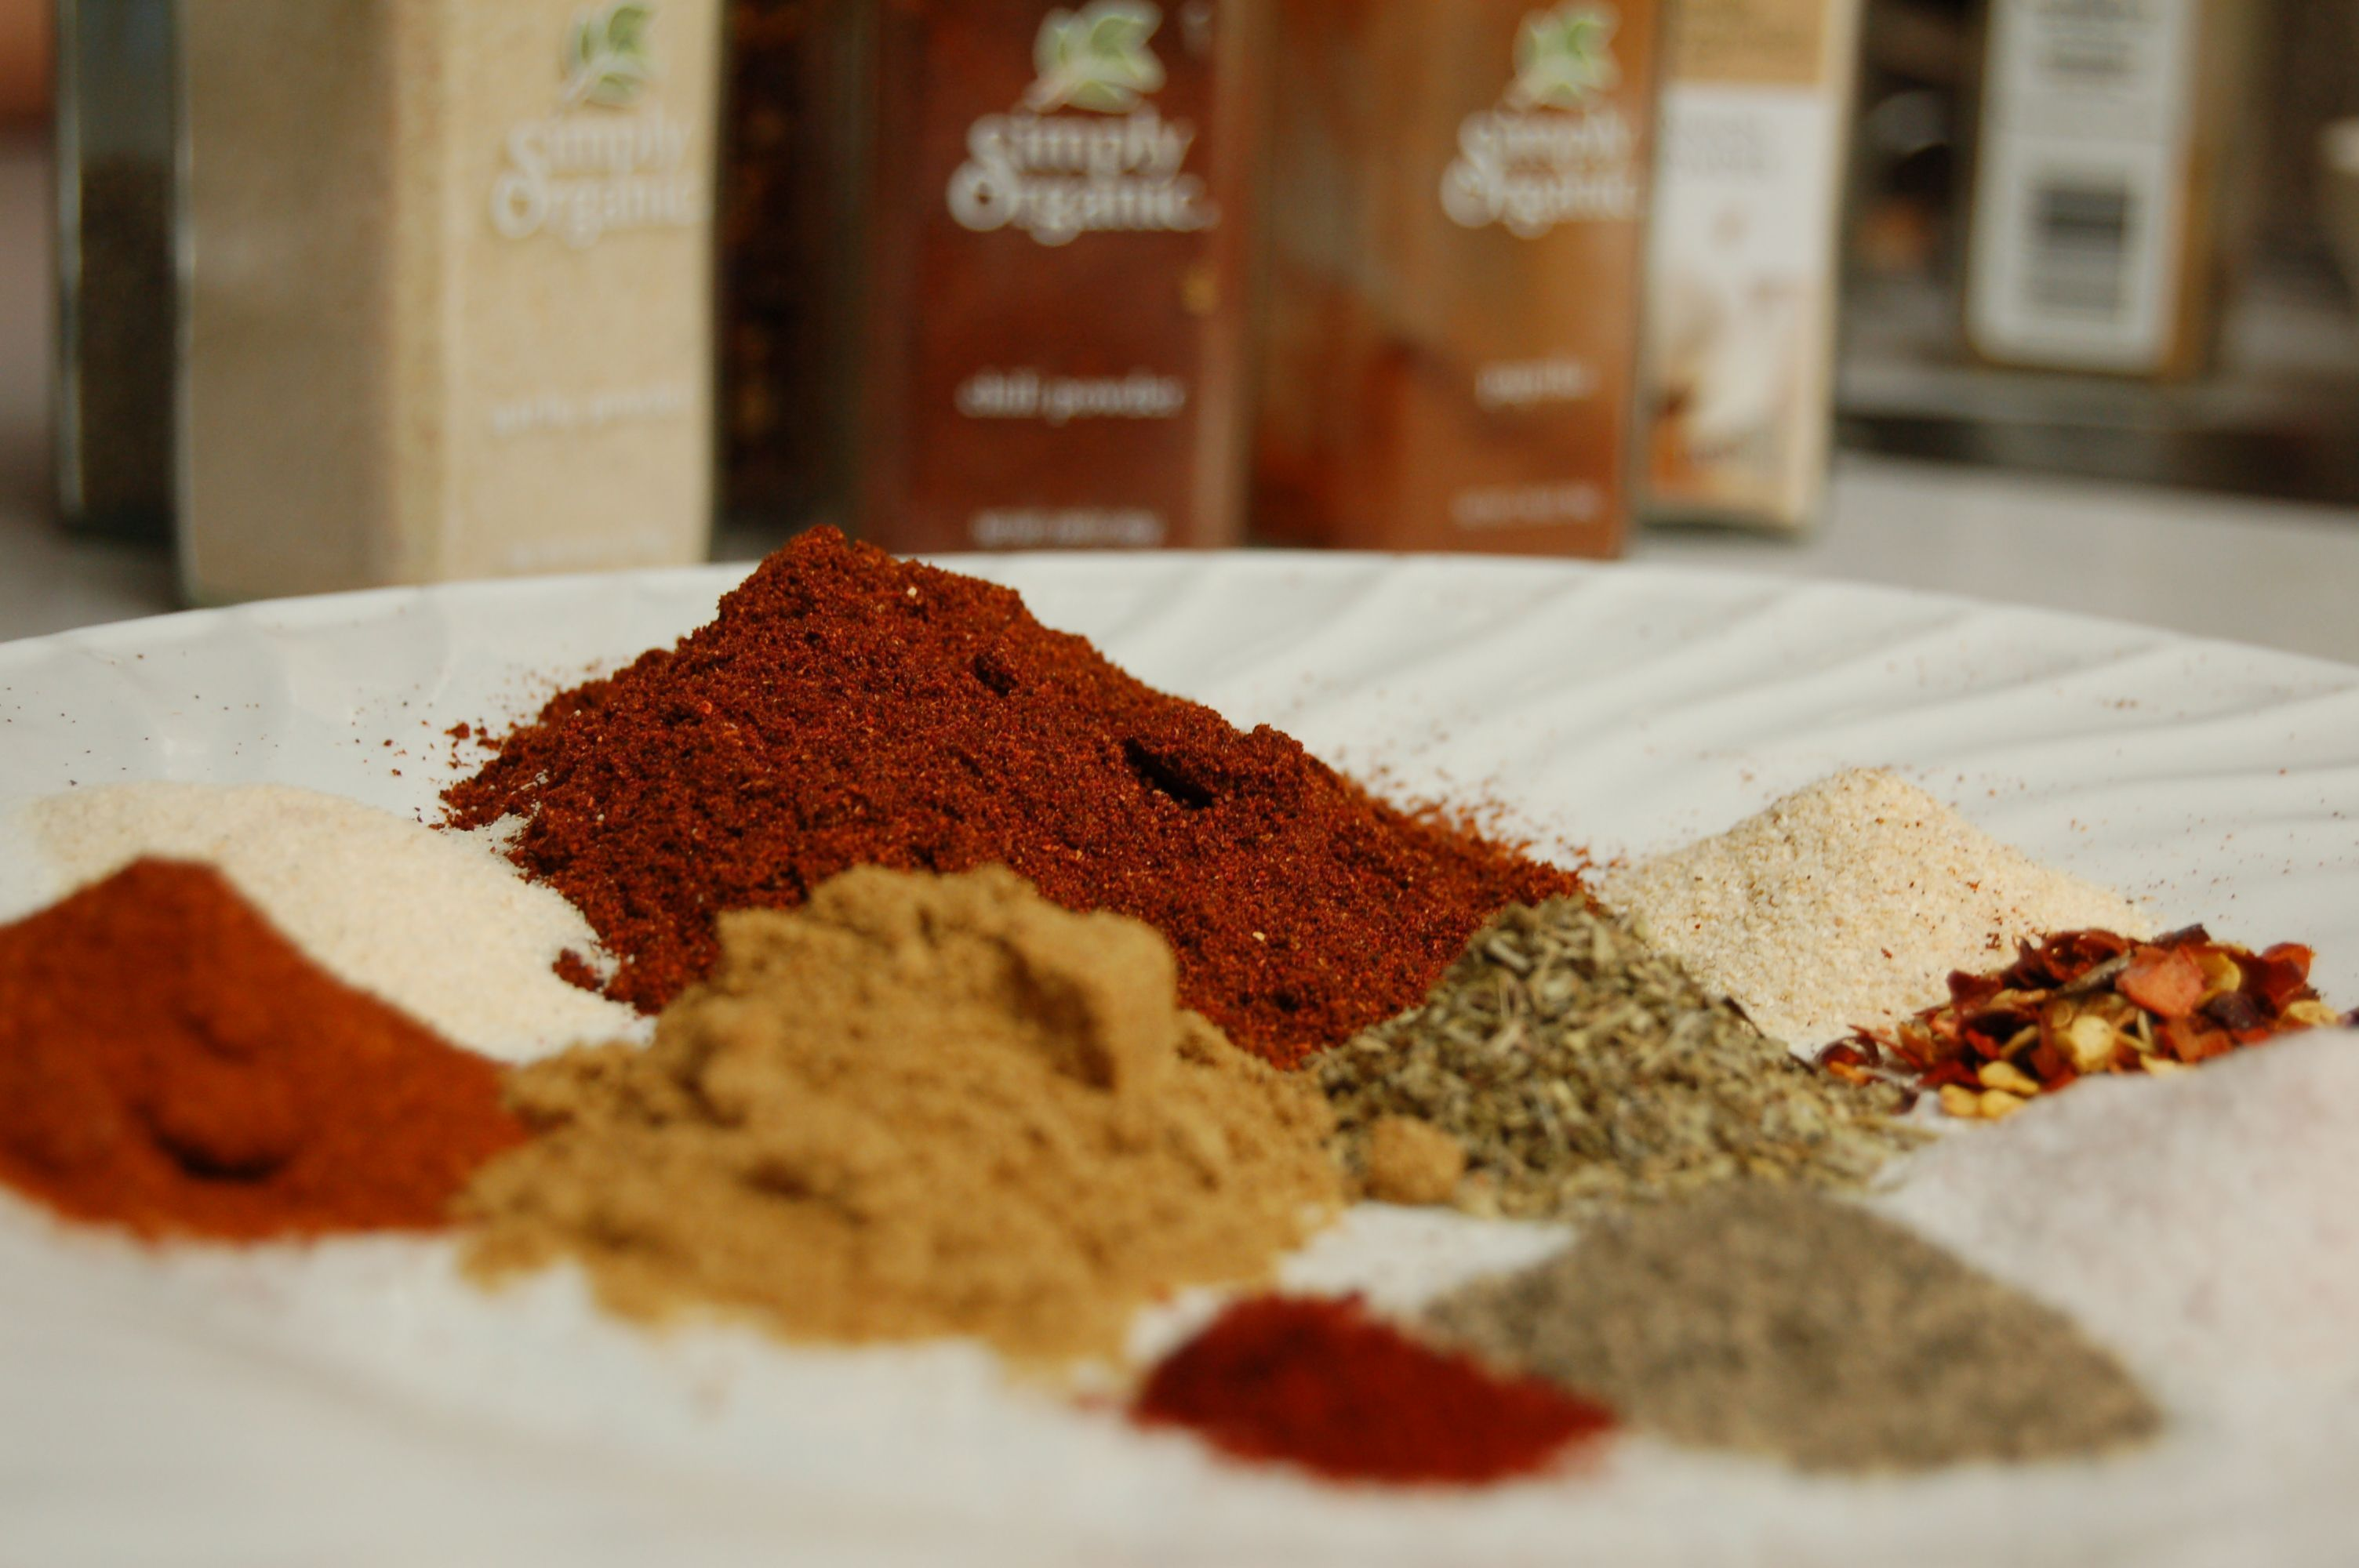 DIY taco seasoning #diytacoseasoning DIY taco seasoning #diytacoseasoning DIY taco seasoning #diytacoseasoning DIY taco seasoning #diytacoseasoning DIY taco seasoning #diytacoseasoning DIY taco seasoning #diytacoseasoning DIY taco seasoning #diytacoseasoning DIY taco seasoning #tacoseasoningpacket DIY taco seasoning #diytacoseasoning DIY taco seasoning #diytacoseasoning DIY taco seasoning #diytacoseasoning DIY taco seasoning #diytacoseasoning DIY taco seasoning #diytacoseasoning DIY taco seasoni #diytacoseasoning